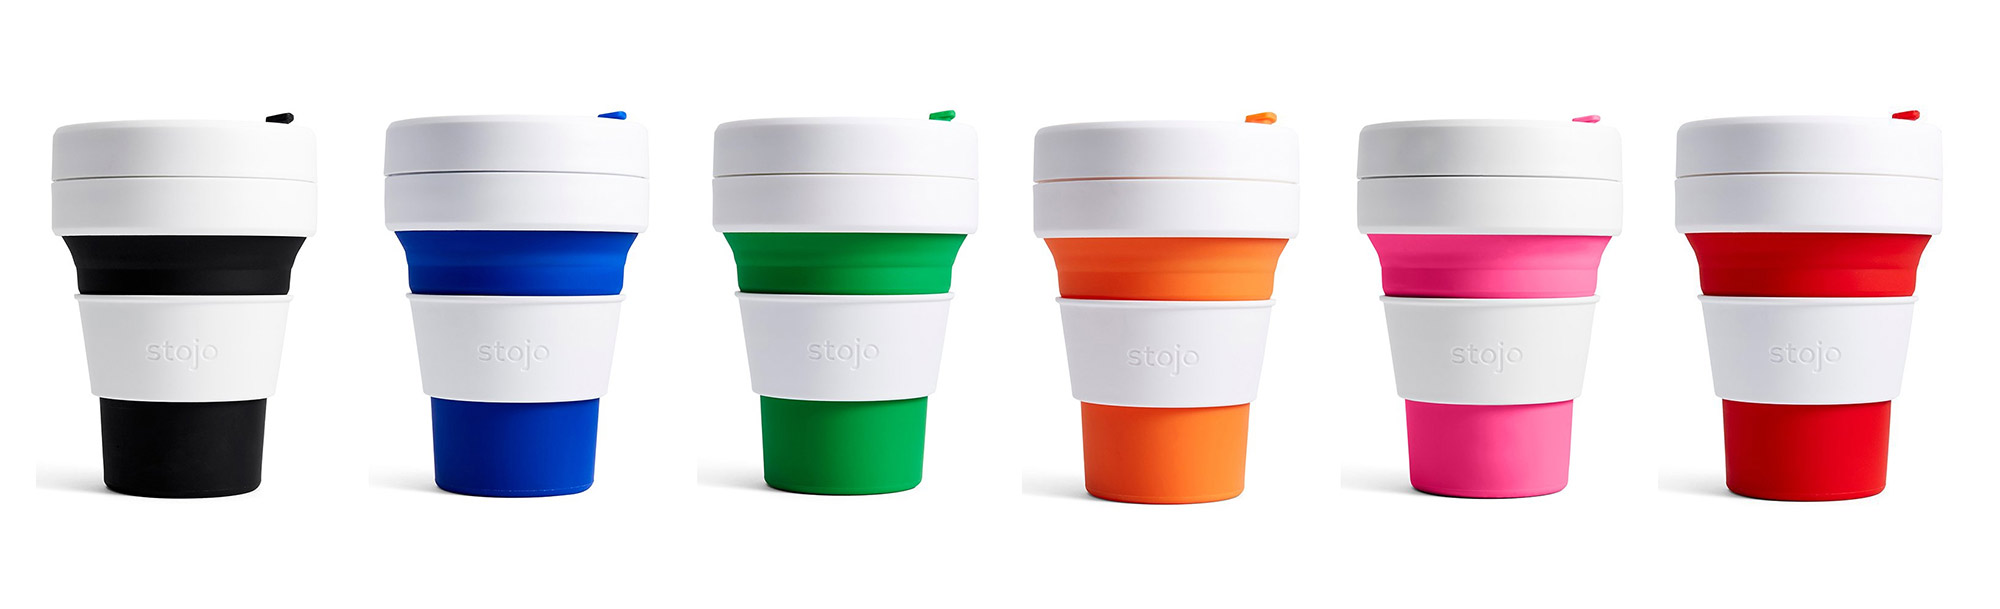 Review - Stojo reusable coffee cups in several colours